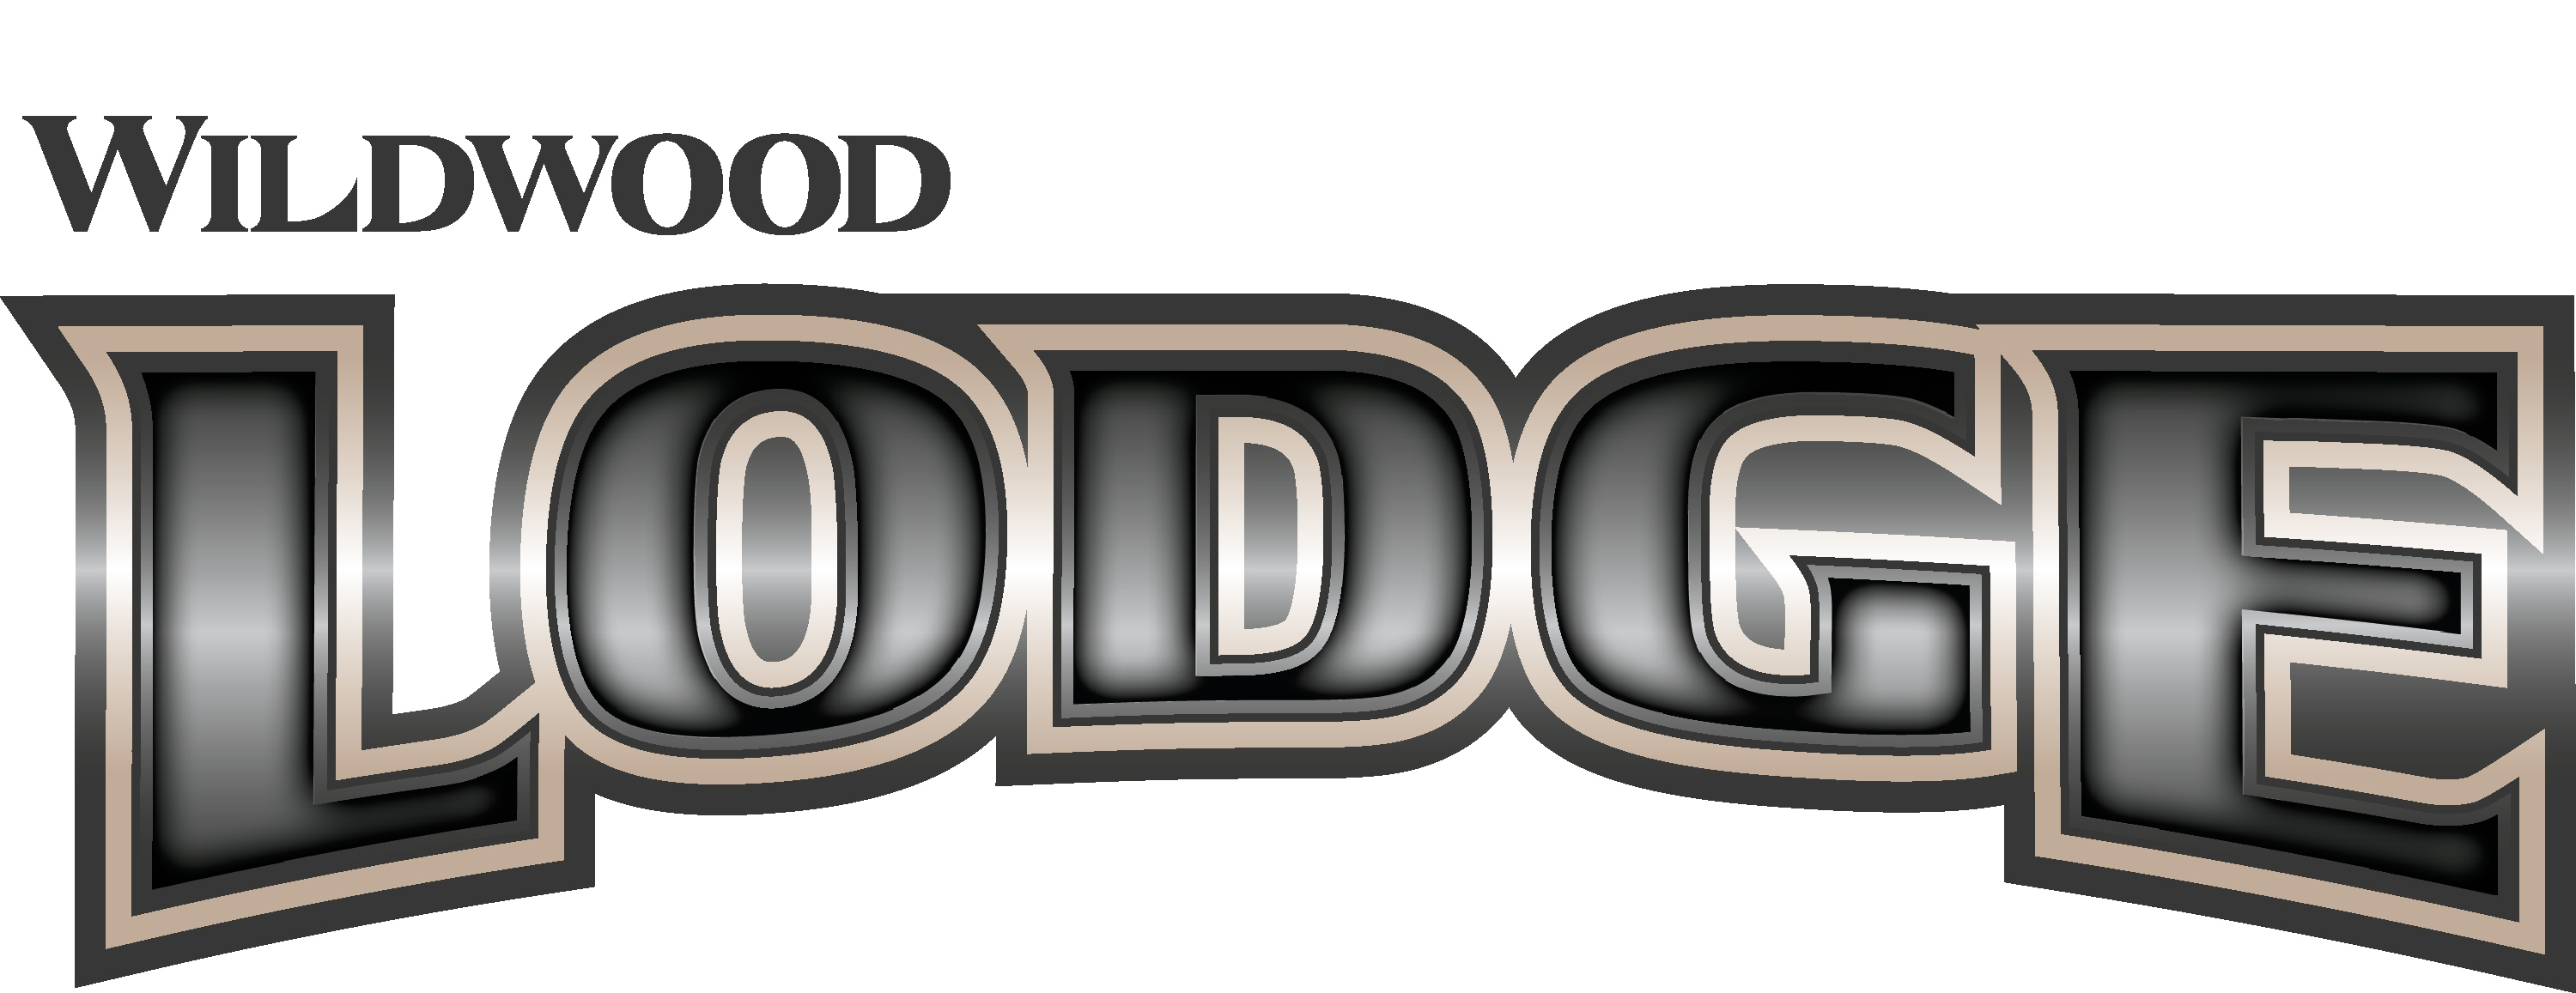 Wildwood Lodge Destination Trailer Logo